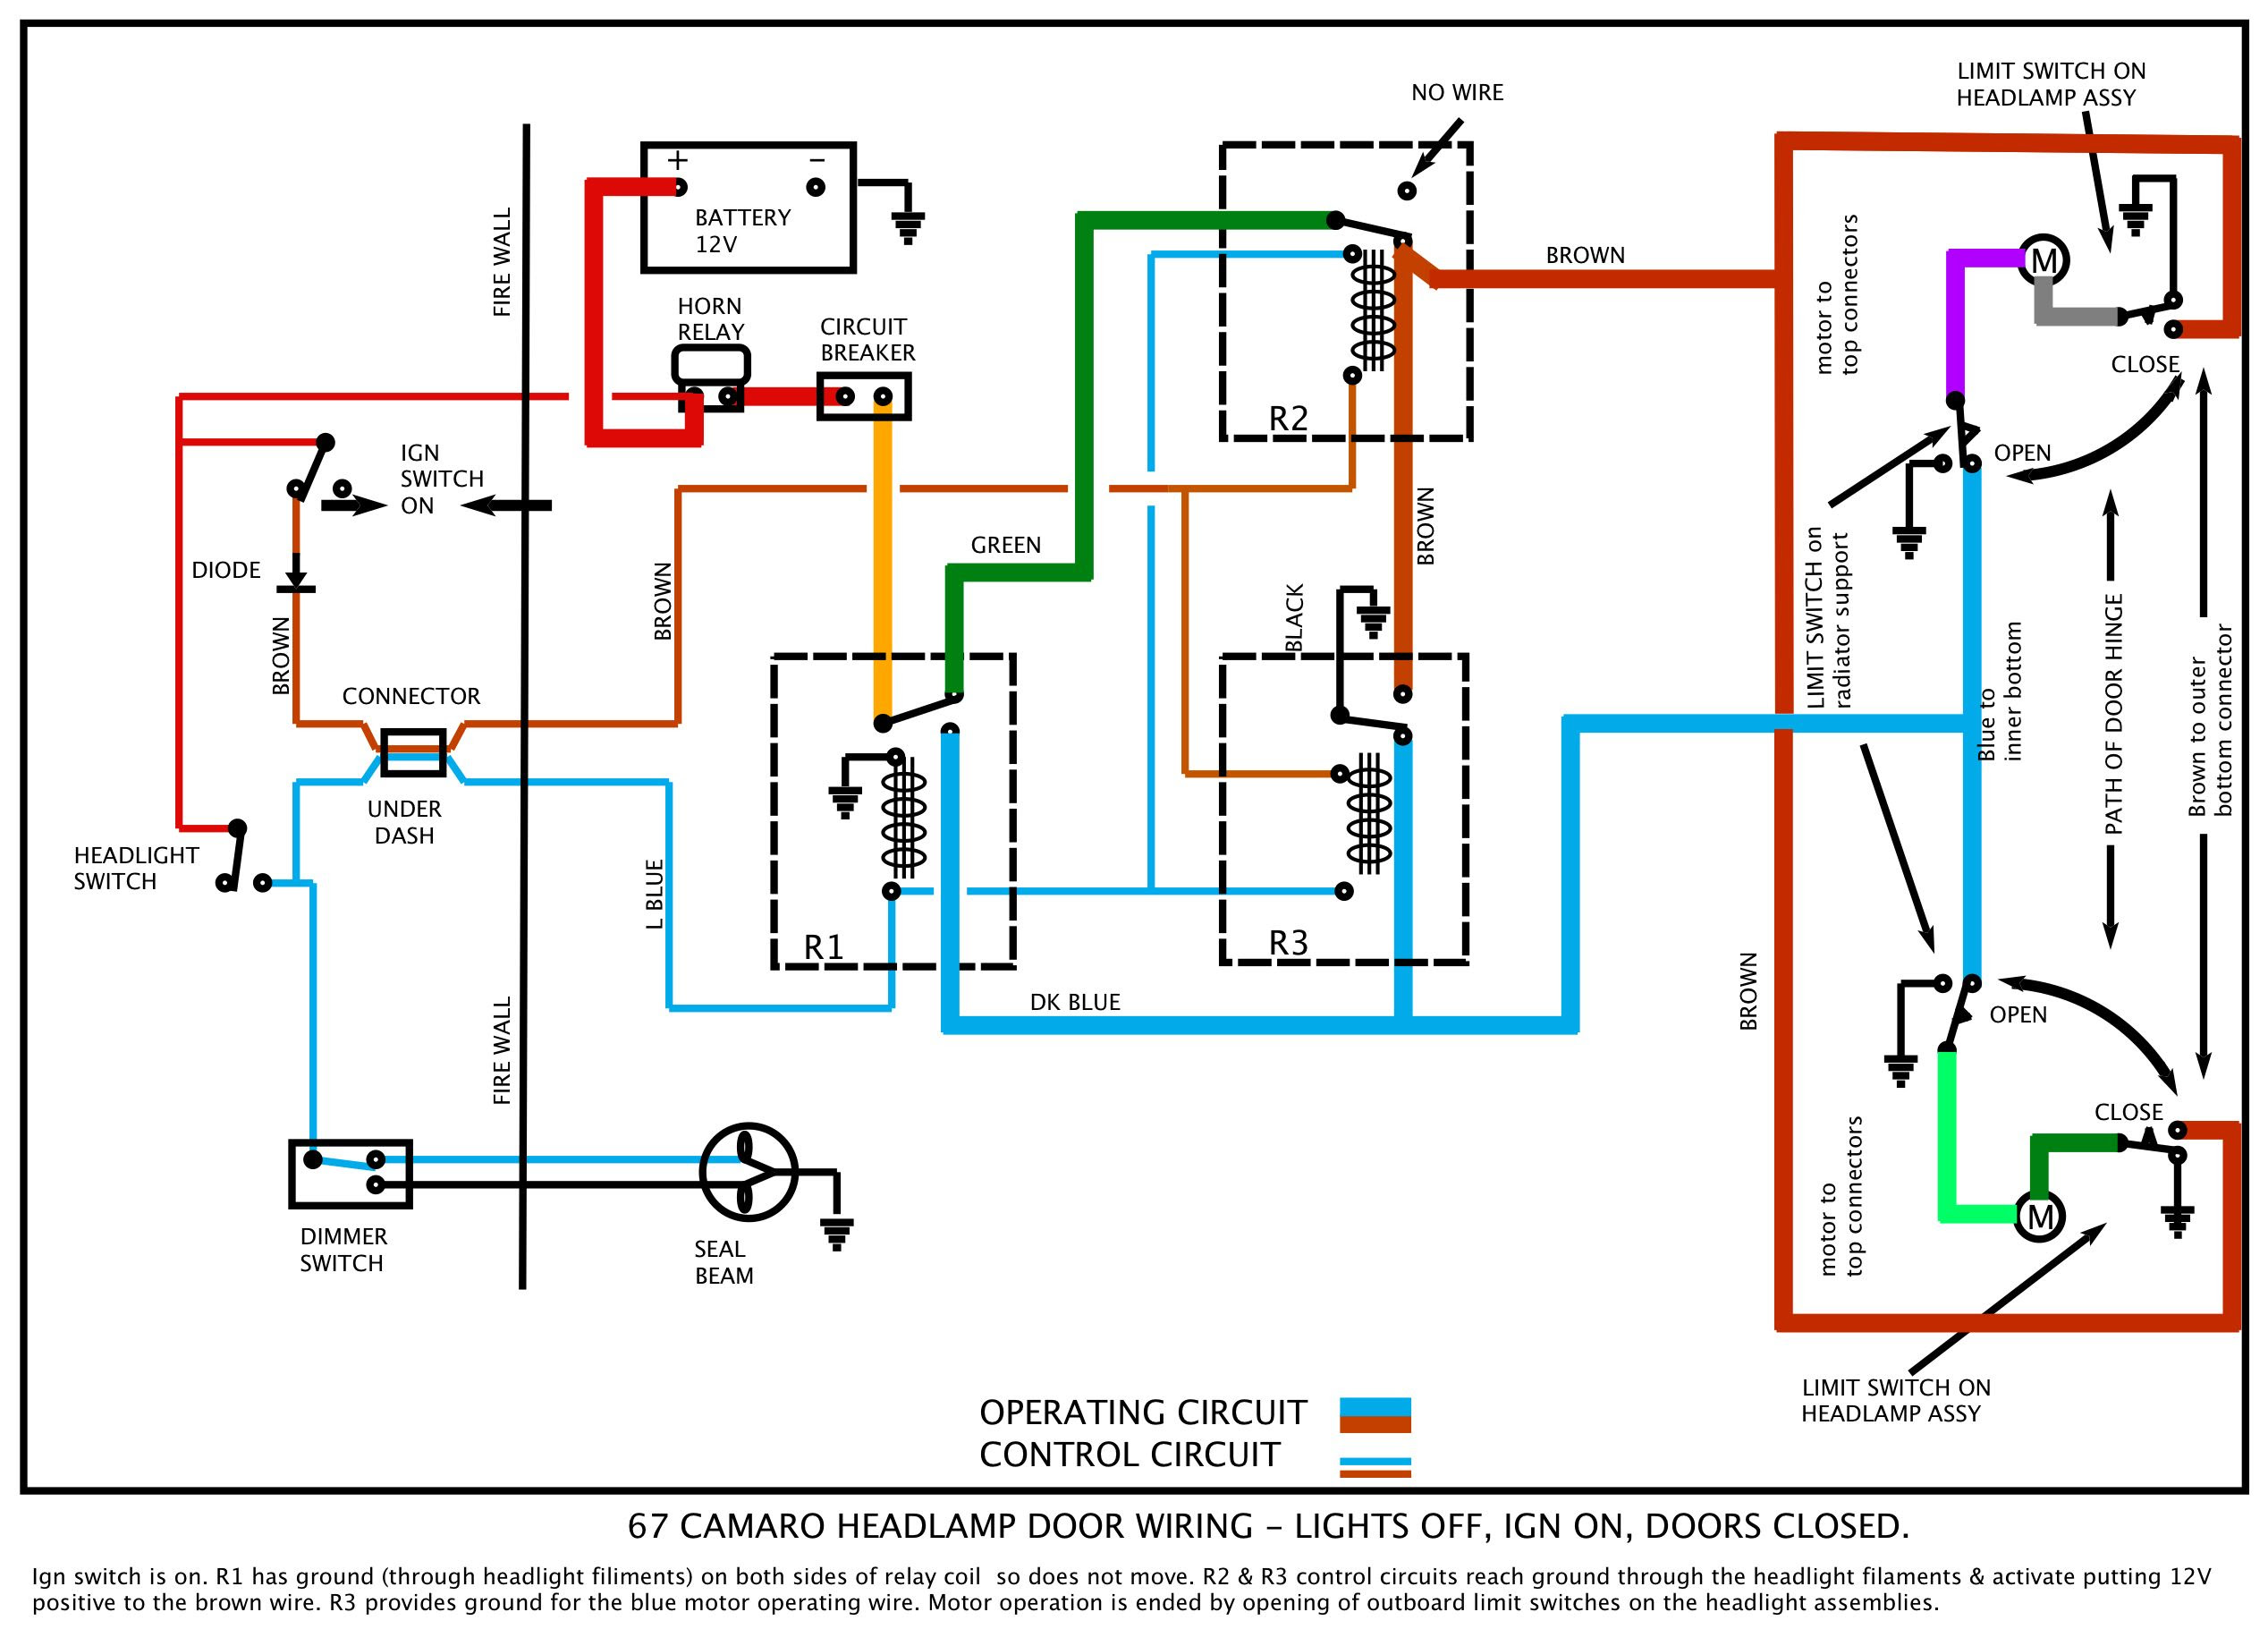 1968 Camaro Turn Signal Wiring Diagram Wiring Diagram Series Series Pasticceriagele It